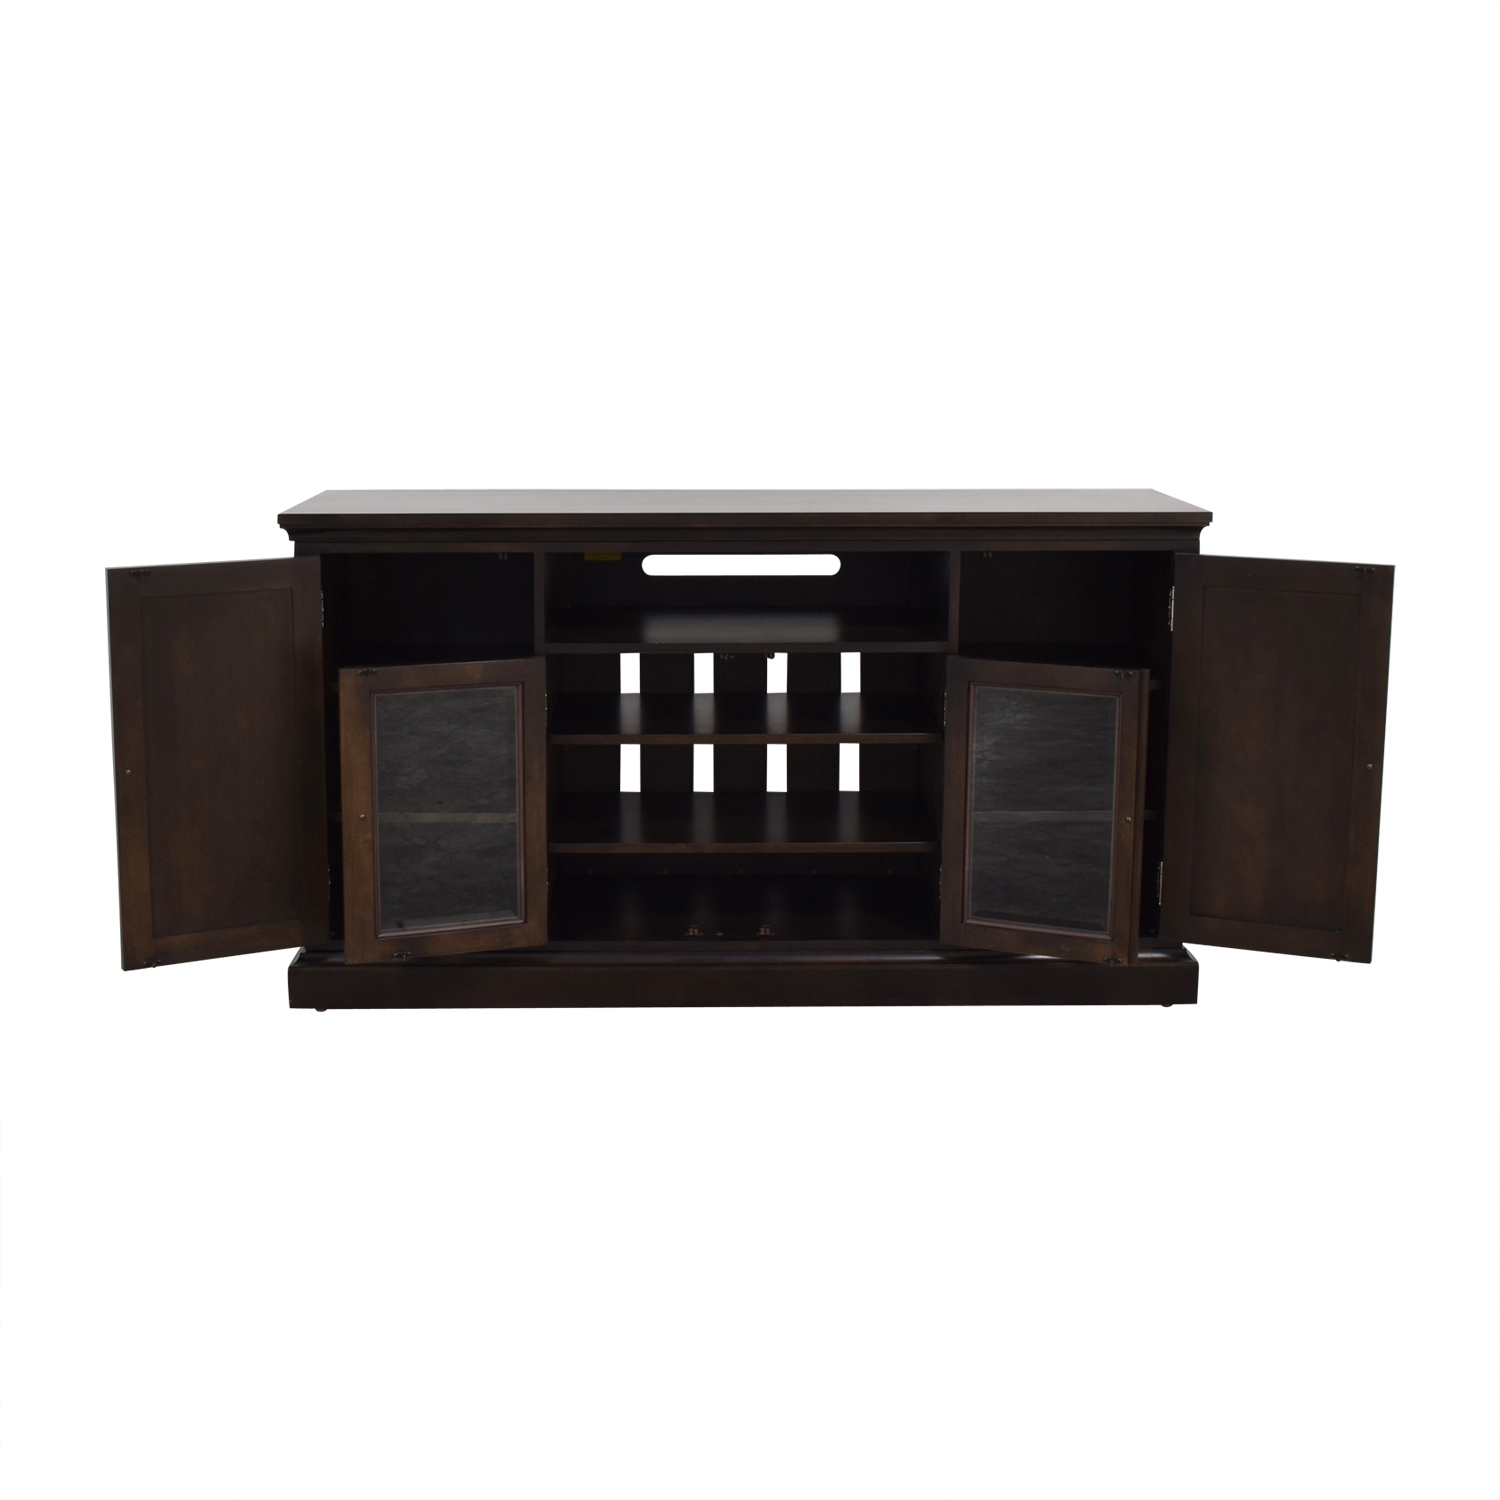 Ethan Allen Ethan Allen Wood and Glass Media Cabinet on sale